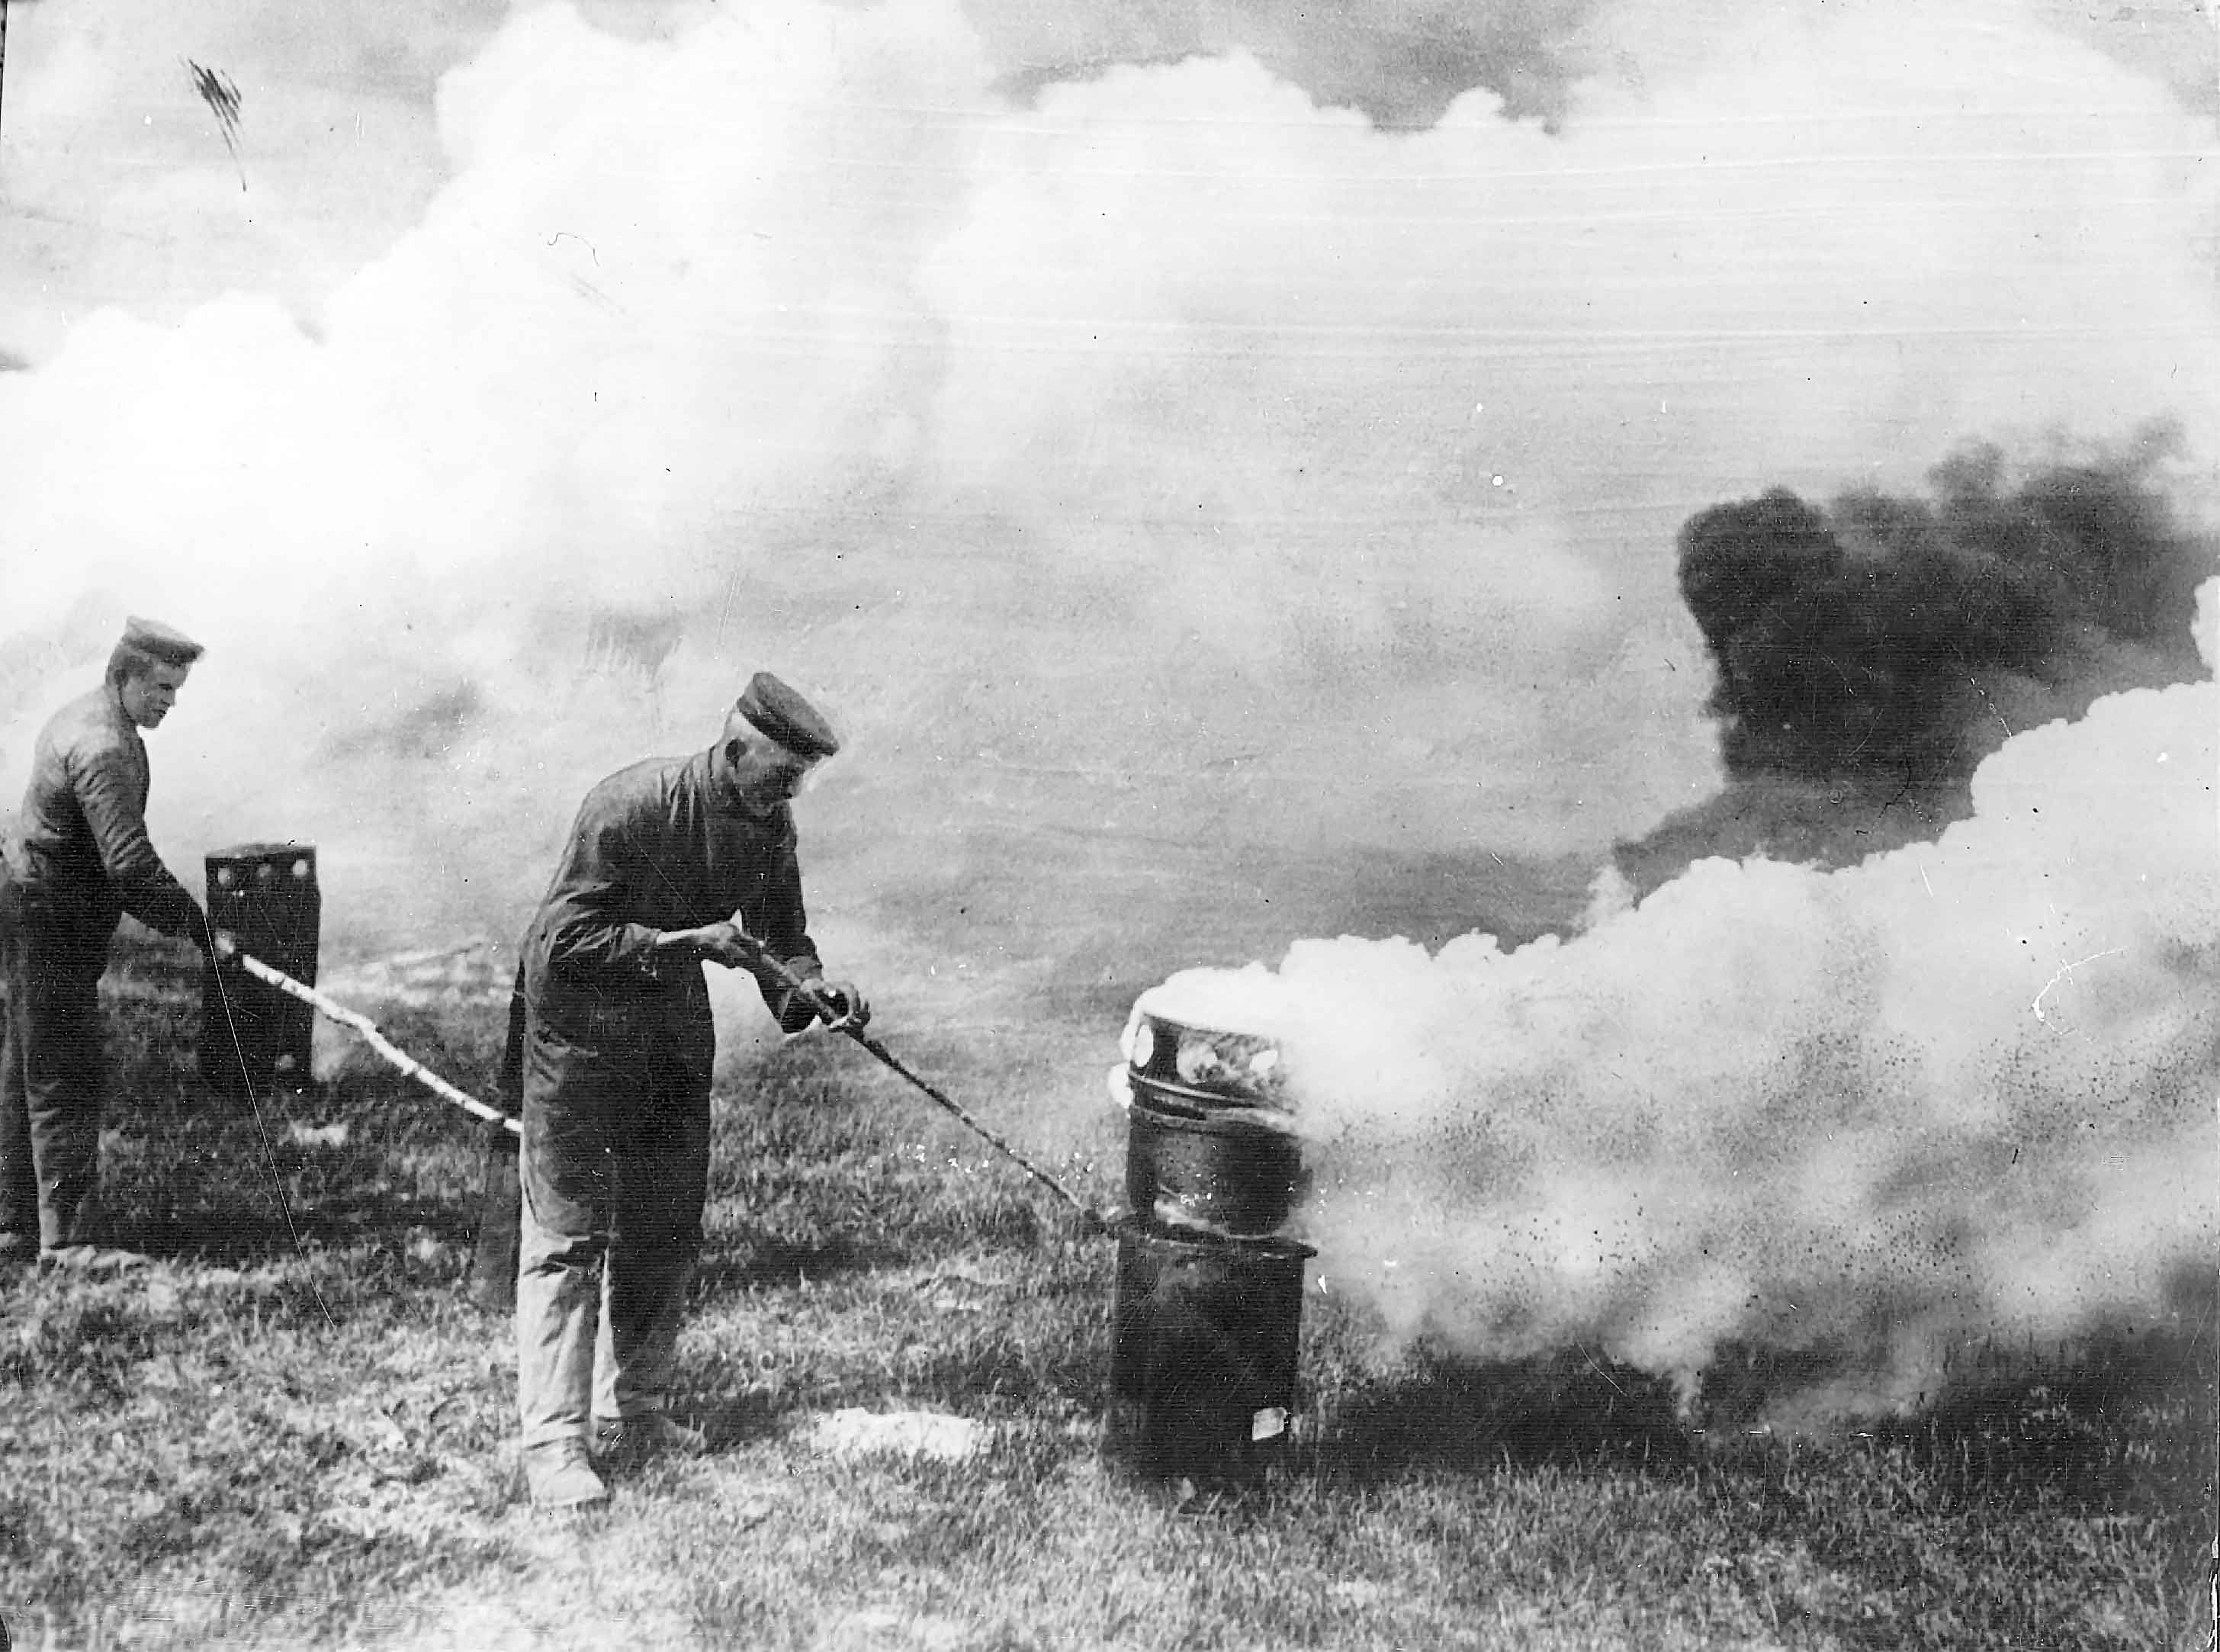 German soldiers ignite chlorine gas canisters during the Second ...